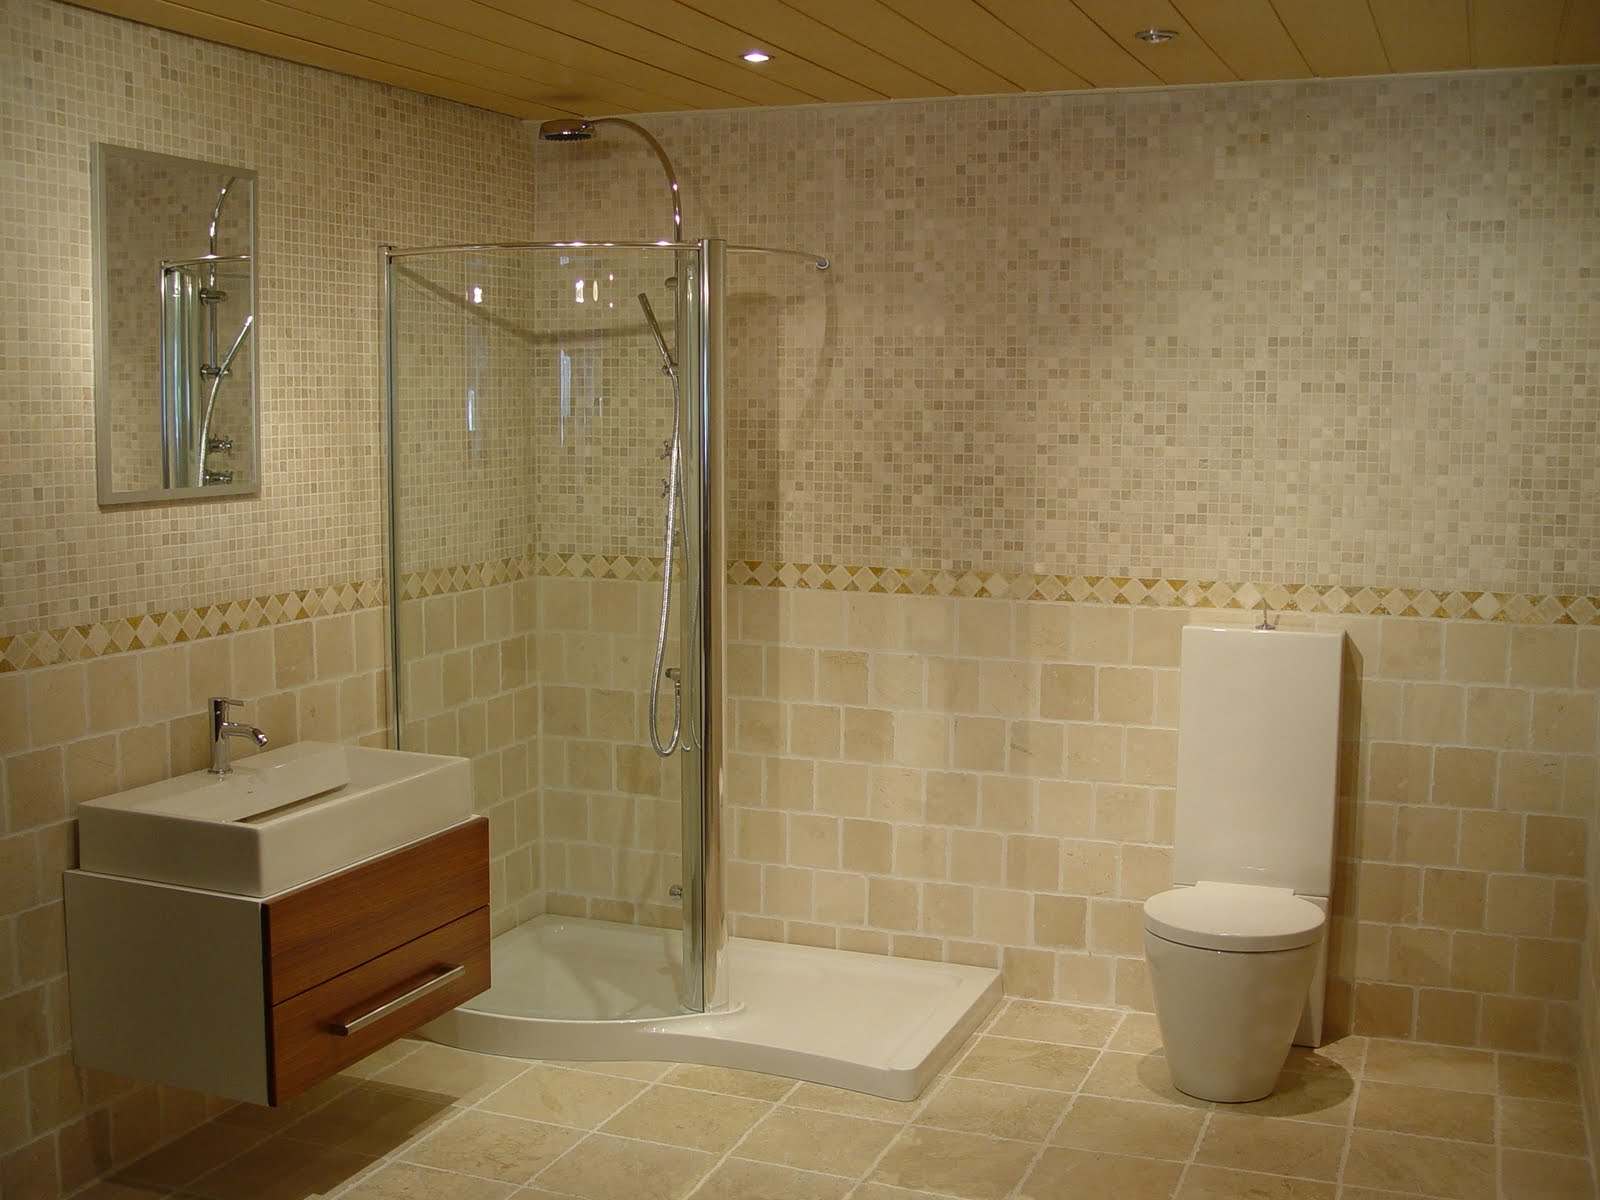 wall tiles design for toilet photo - 6